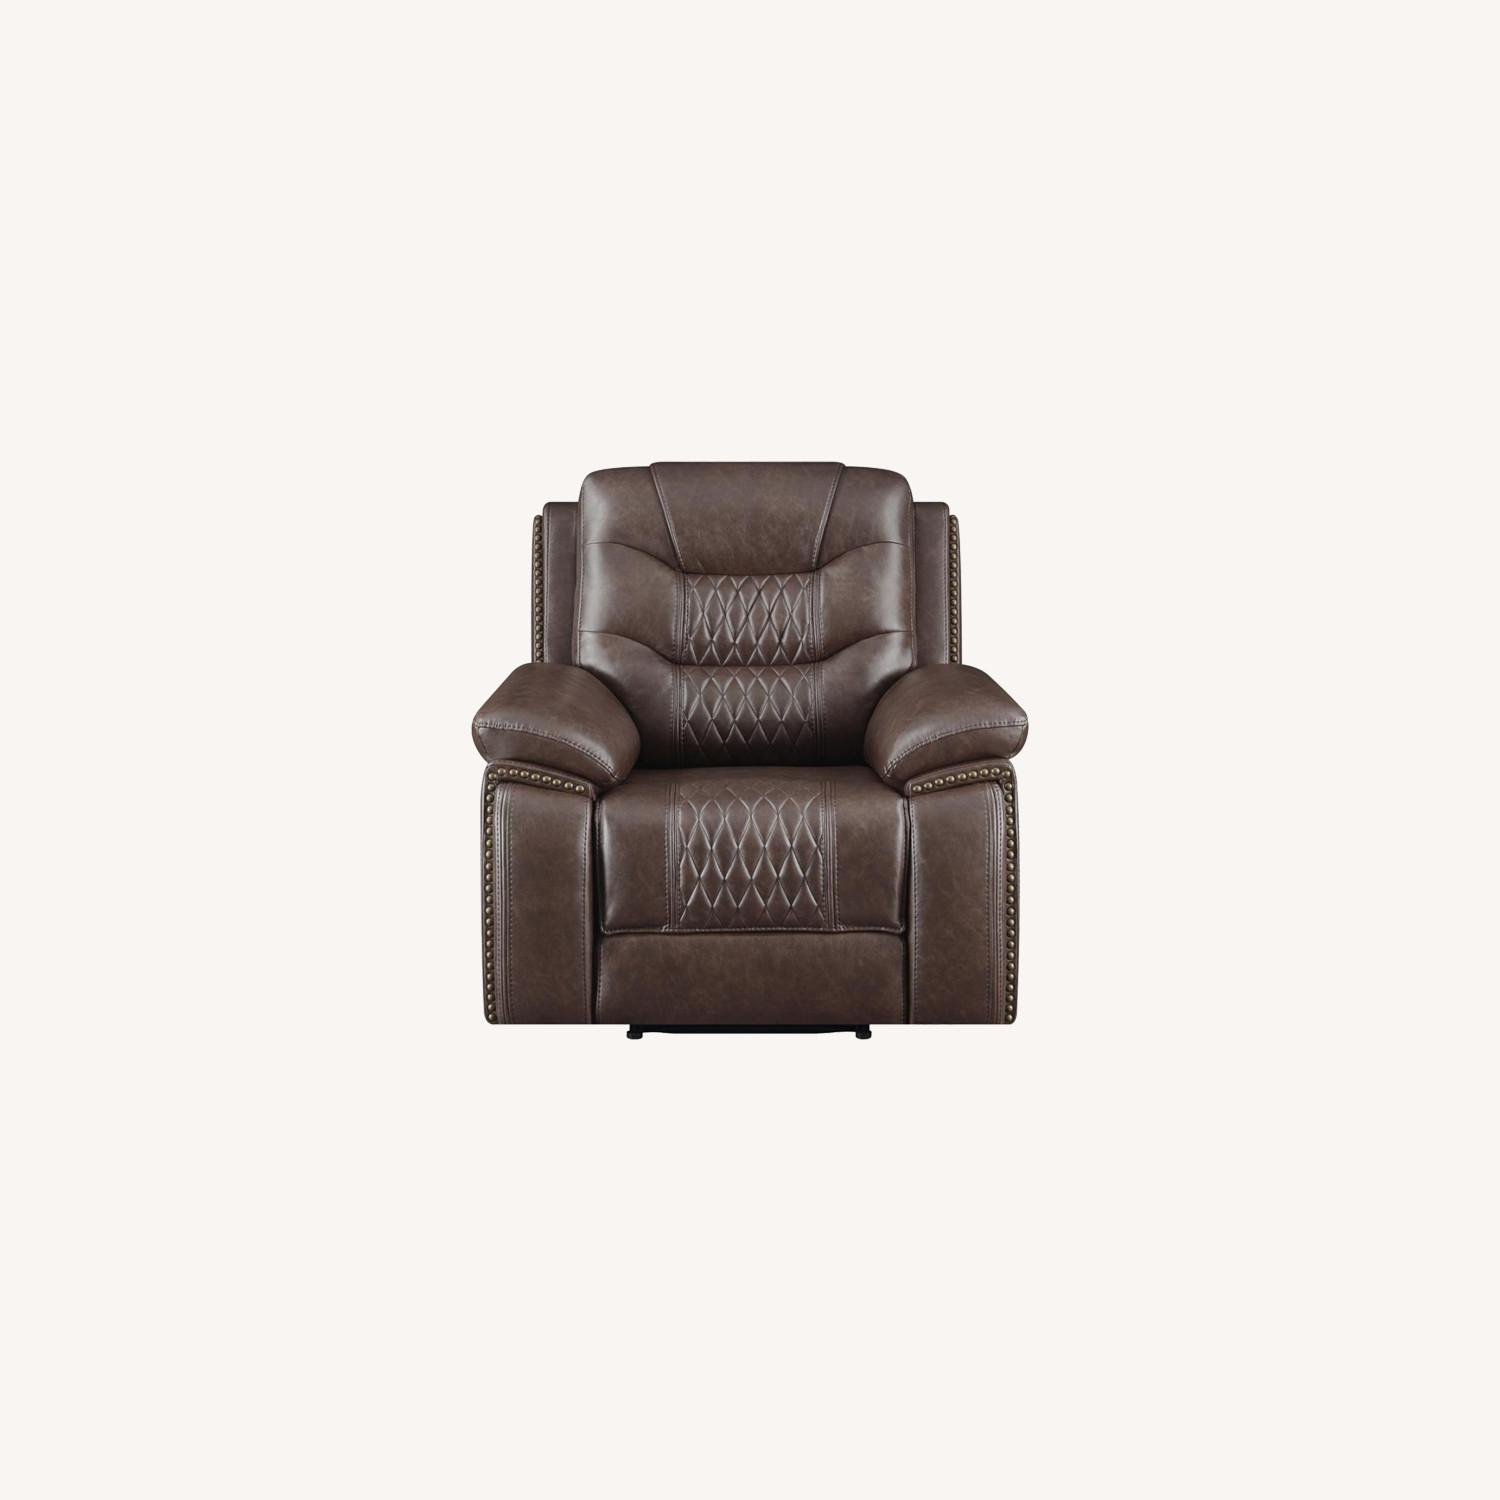 Recliner In Comfortable Brown Performance Leather - image-8